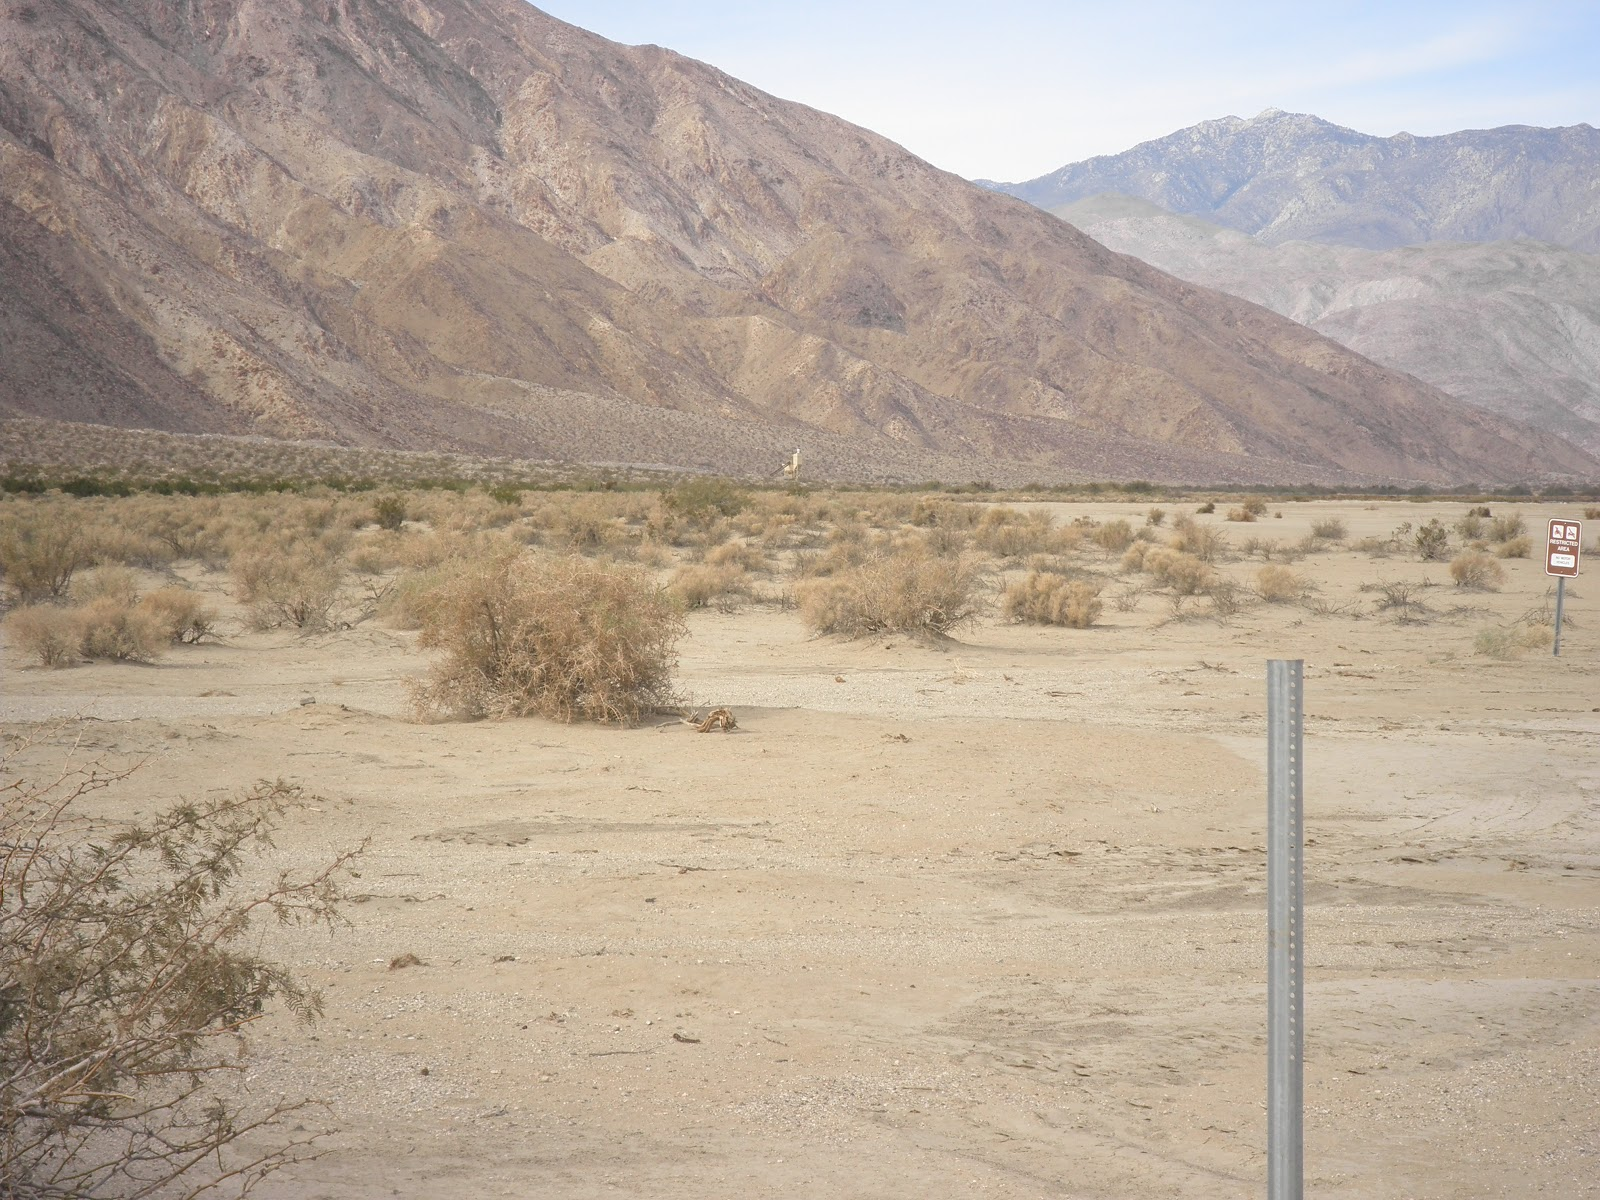 borrego springs dating site Please use flag this event to alert us about content that is inappropriate or needs immediate attention nothing you submit will be shared with other site visitors.